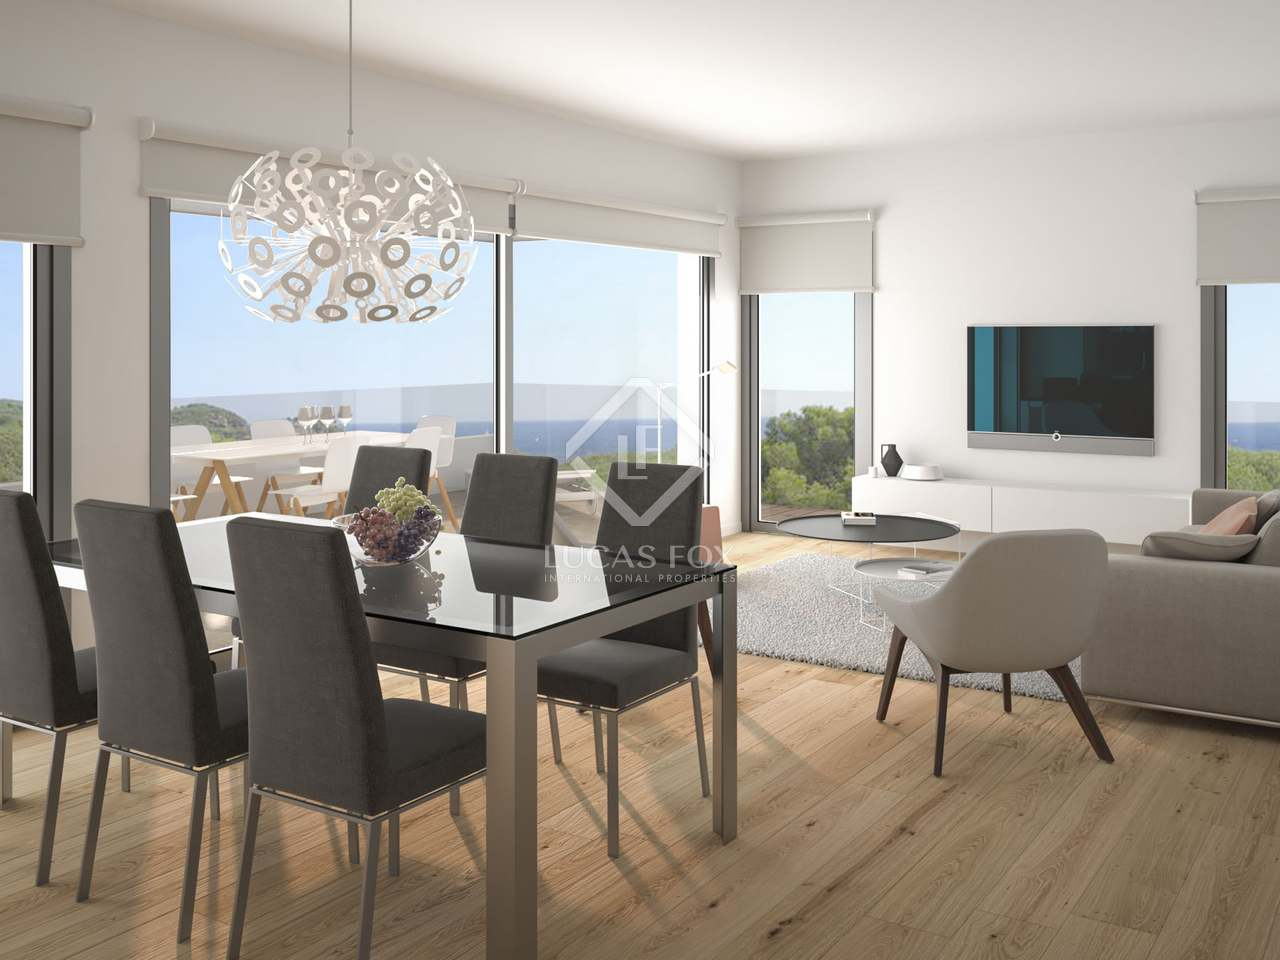 Fantastic Brand New 2 Bedroom Apartment For Sale In Palamos Download Free Architecture Designs Scobabritishbridgeorg